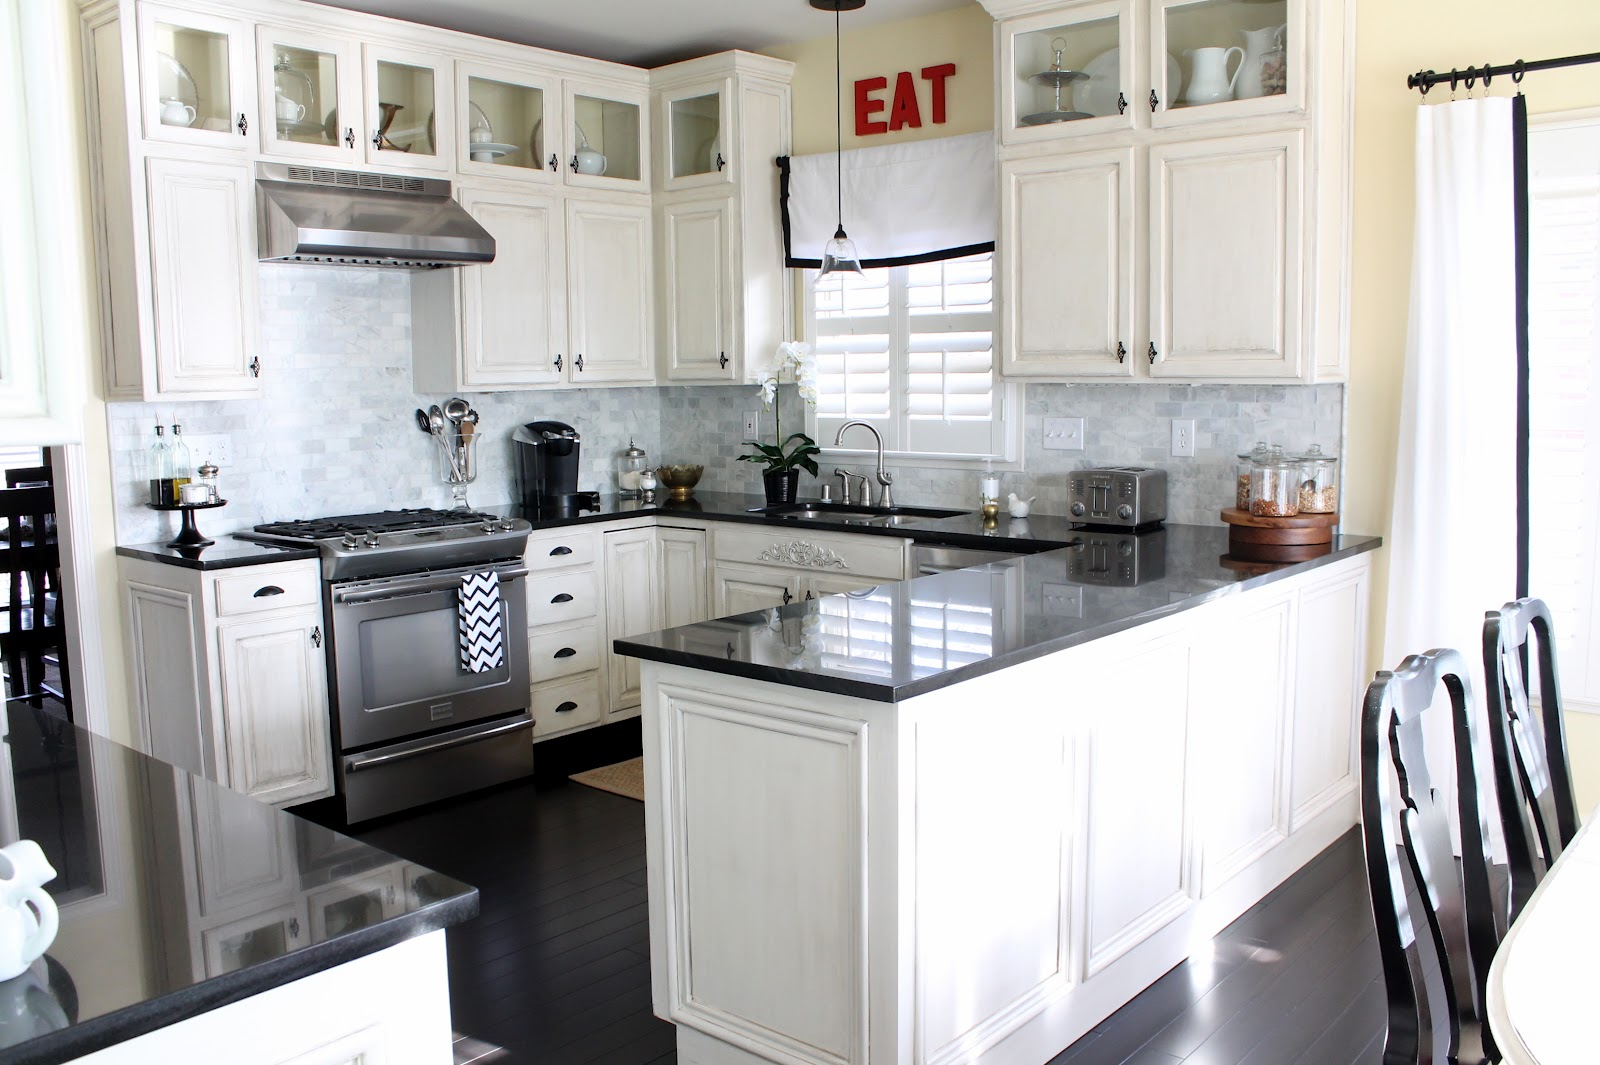 Hmh designs white kitchen cabinets timeless and transcendent - White cabinet kitchen design ...